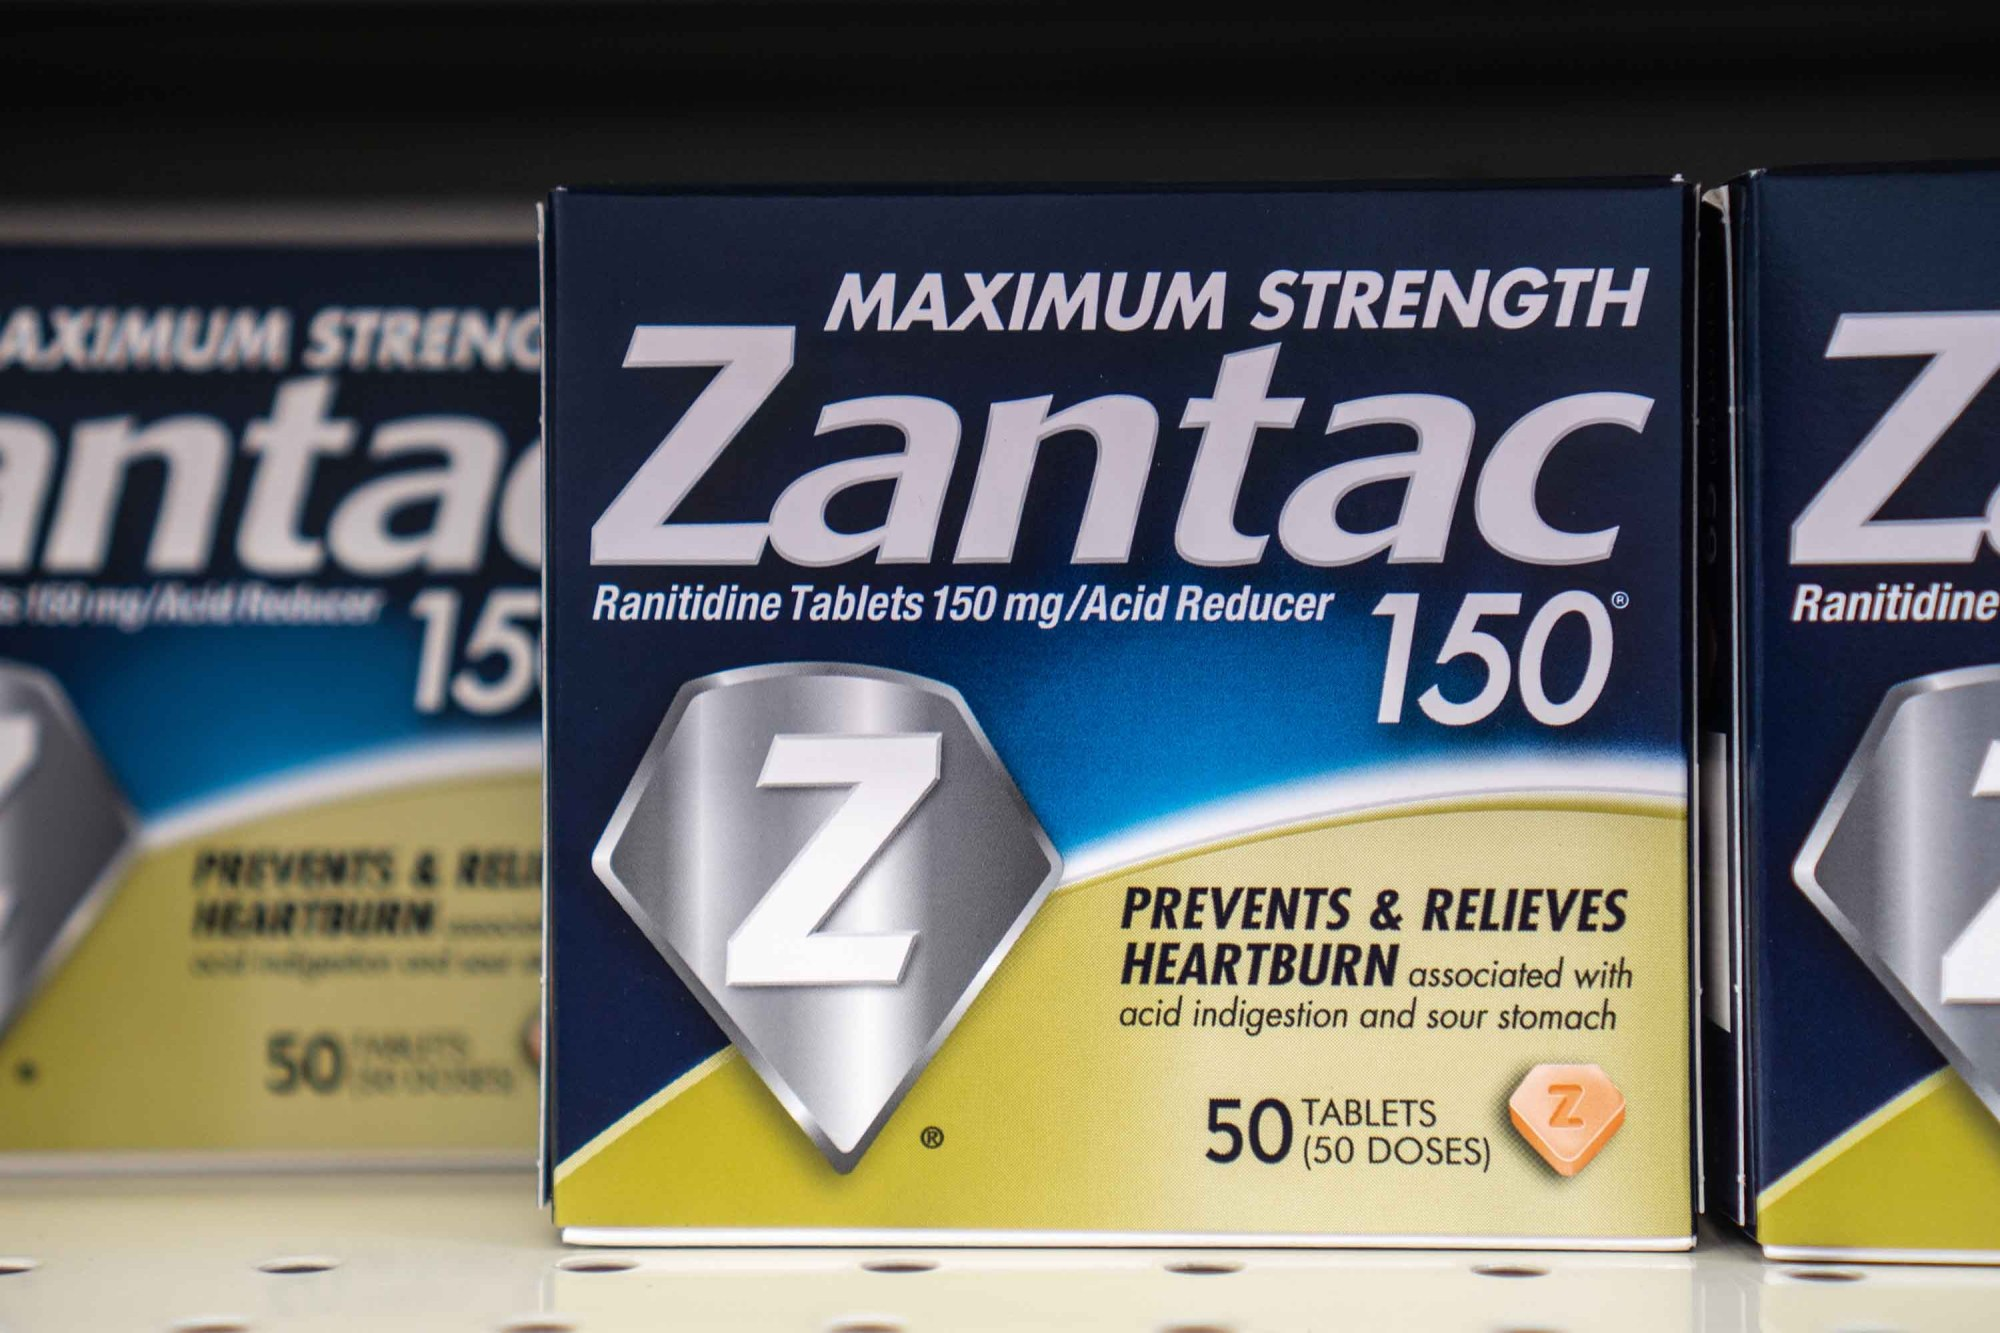 Over the counter Zantac used for acid reflux and heartburn, according to FDA, may contain a probable human carcinogen. (Shutterstock)